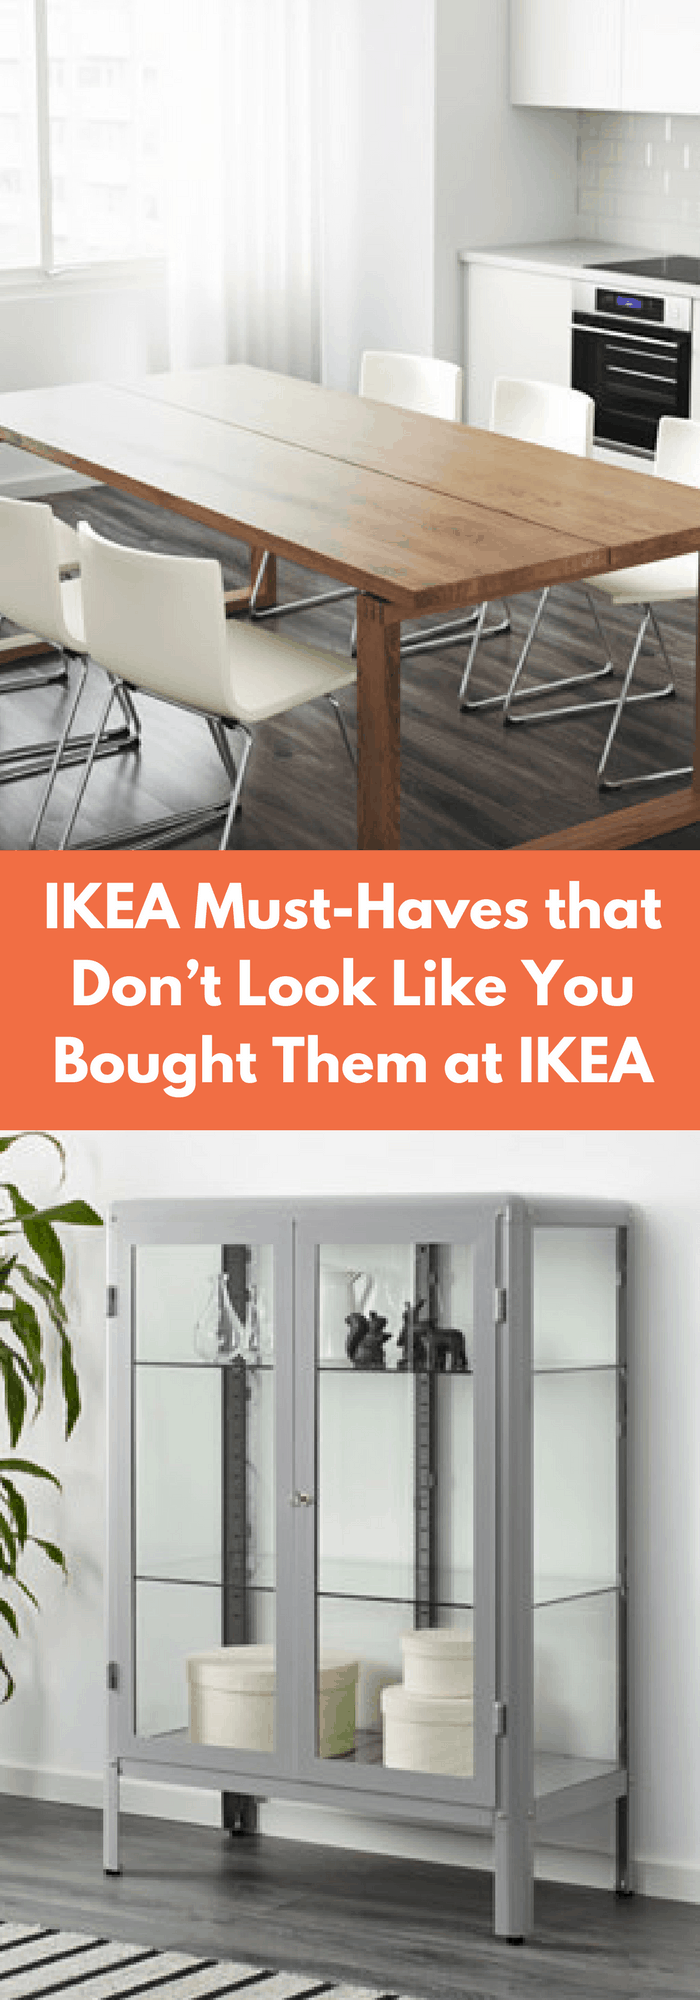 ikea must haves that don t look like you bought them at ikea the organized mom. Black Bedroom Furniture Sets. Home Design Ideas